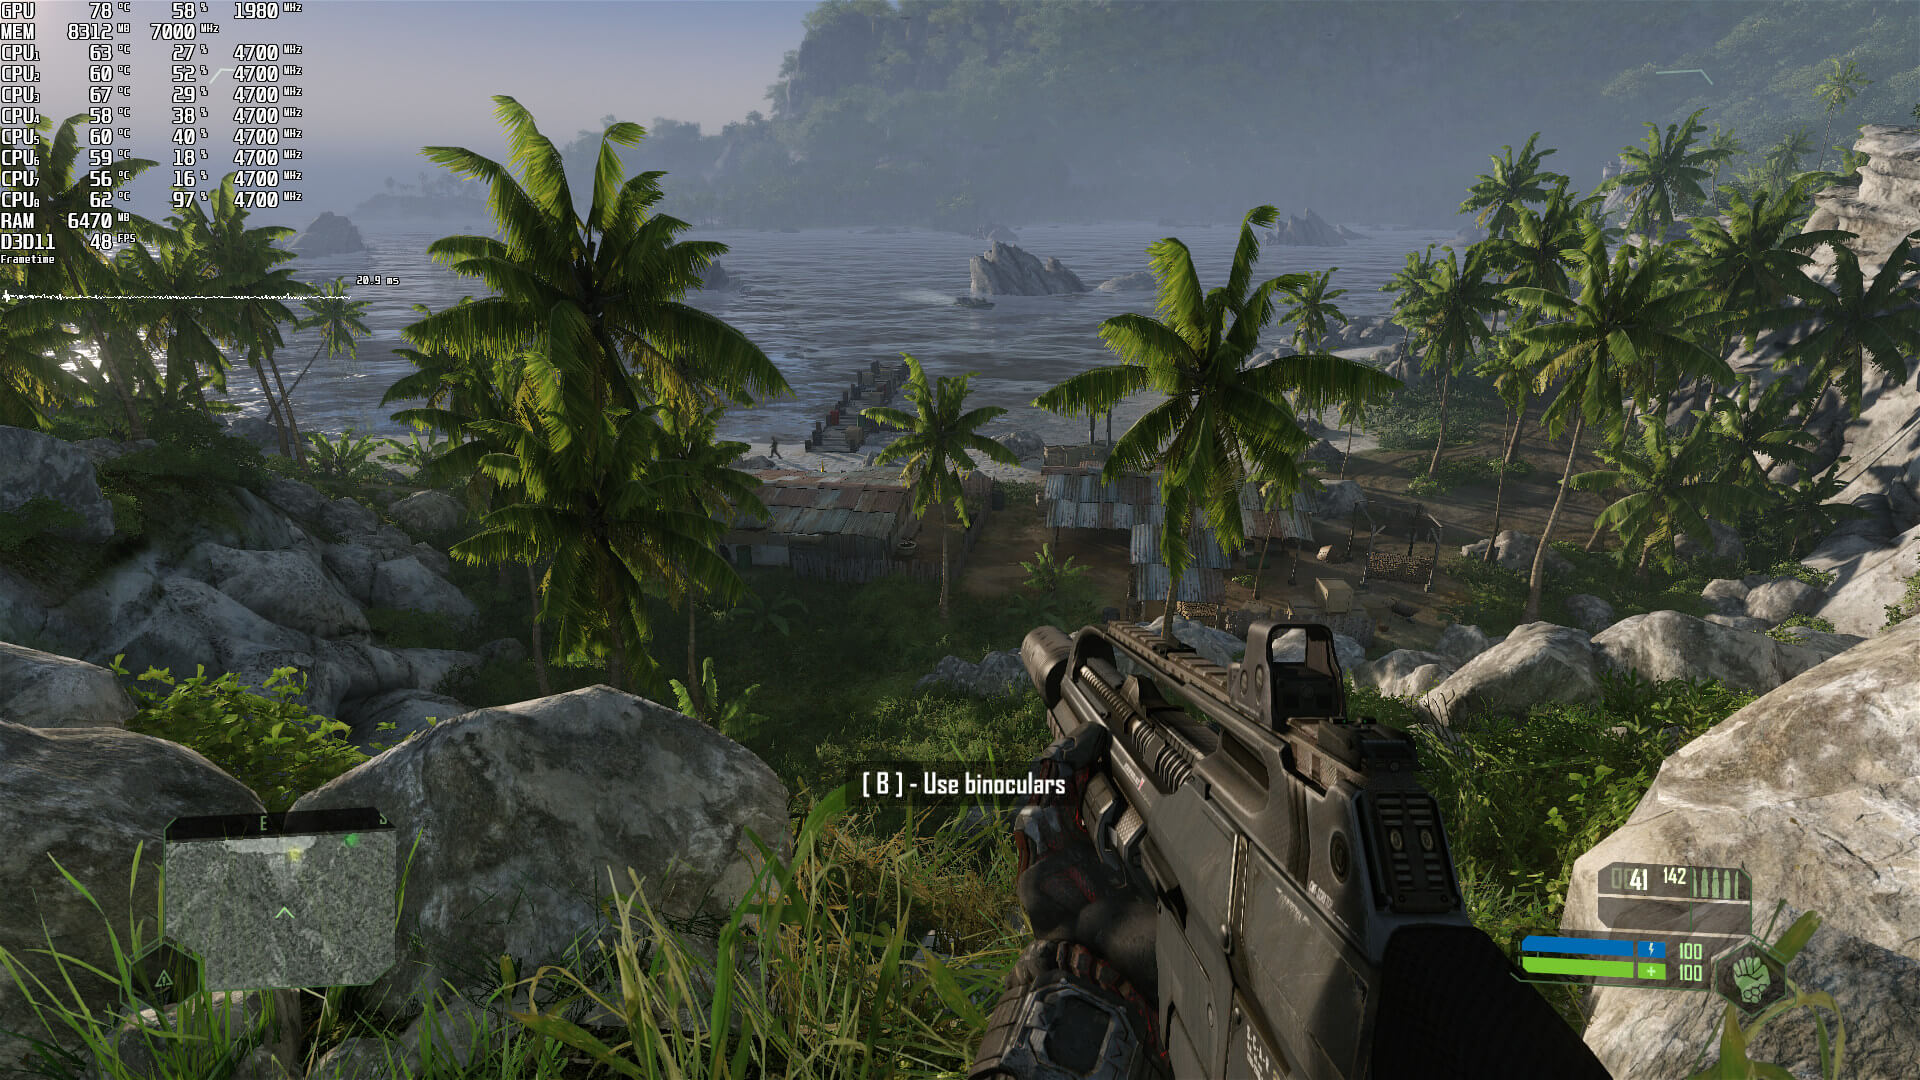 Crysis Remastered 1080p Very High settings